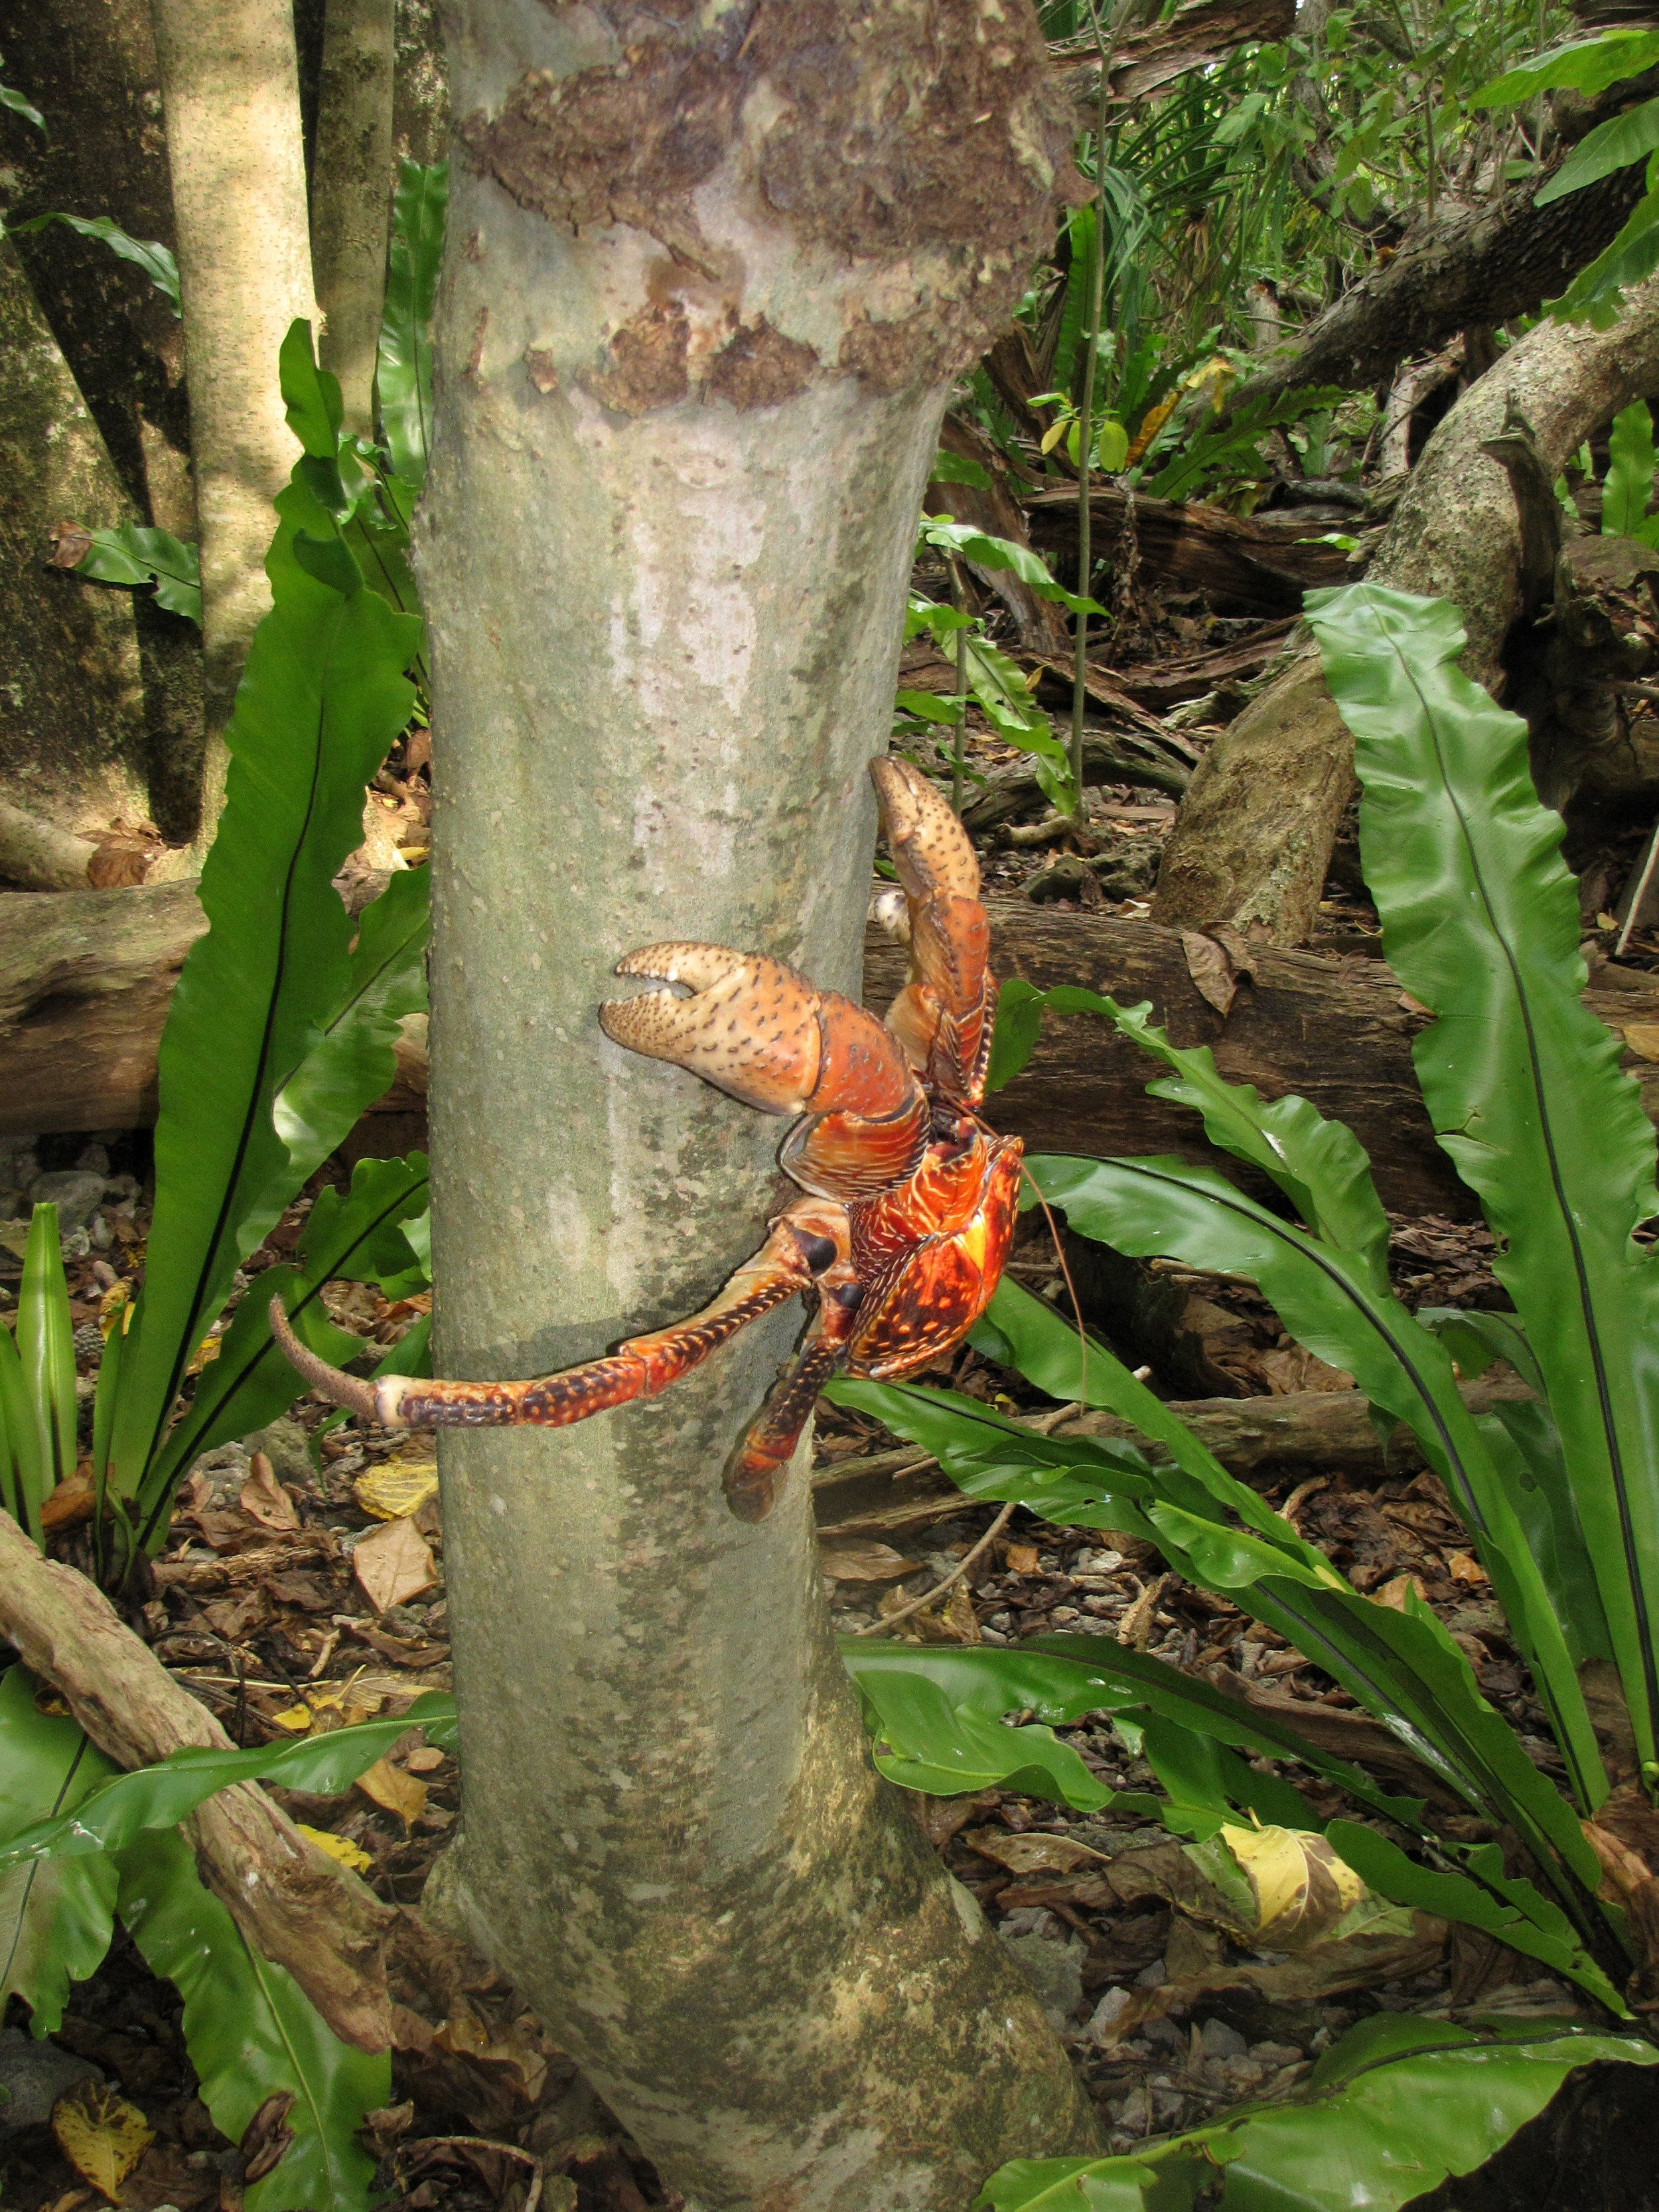 Coconut crab climbing a tree